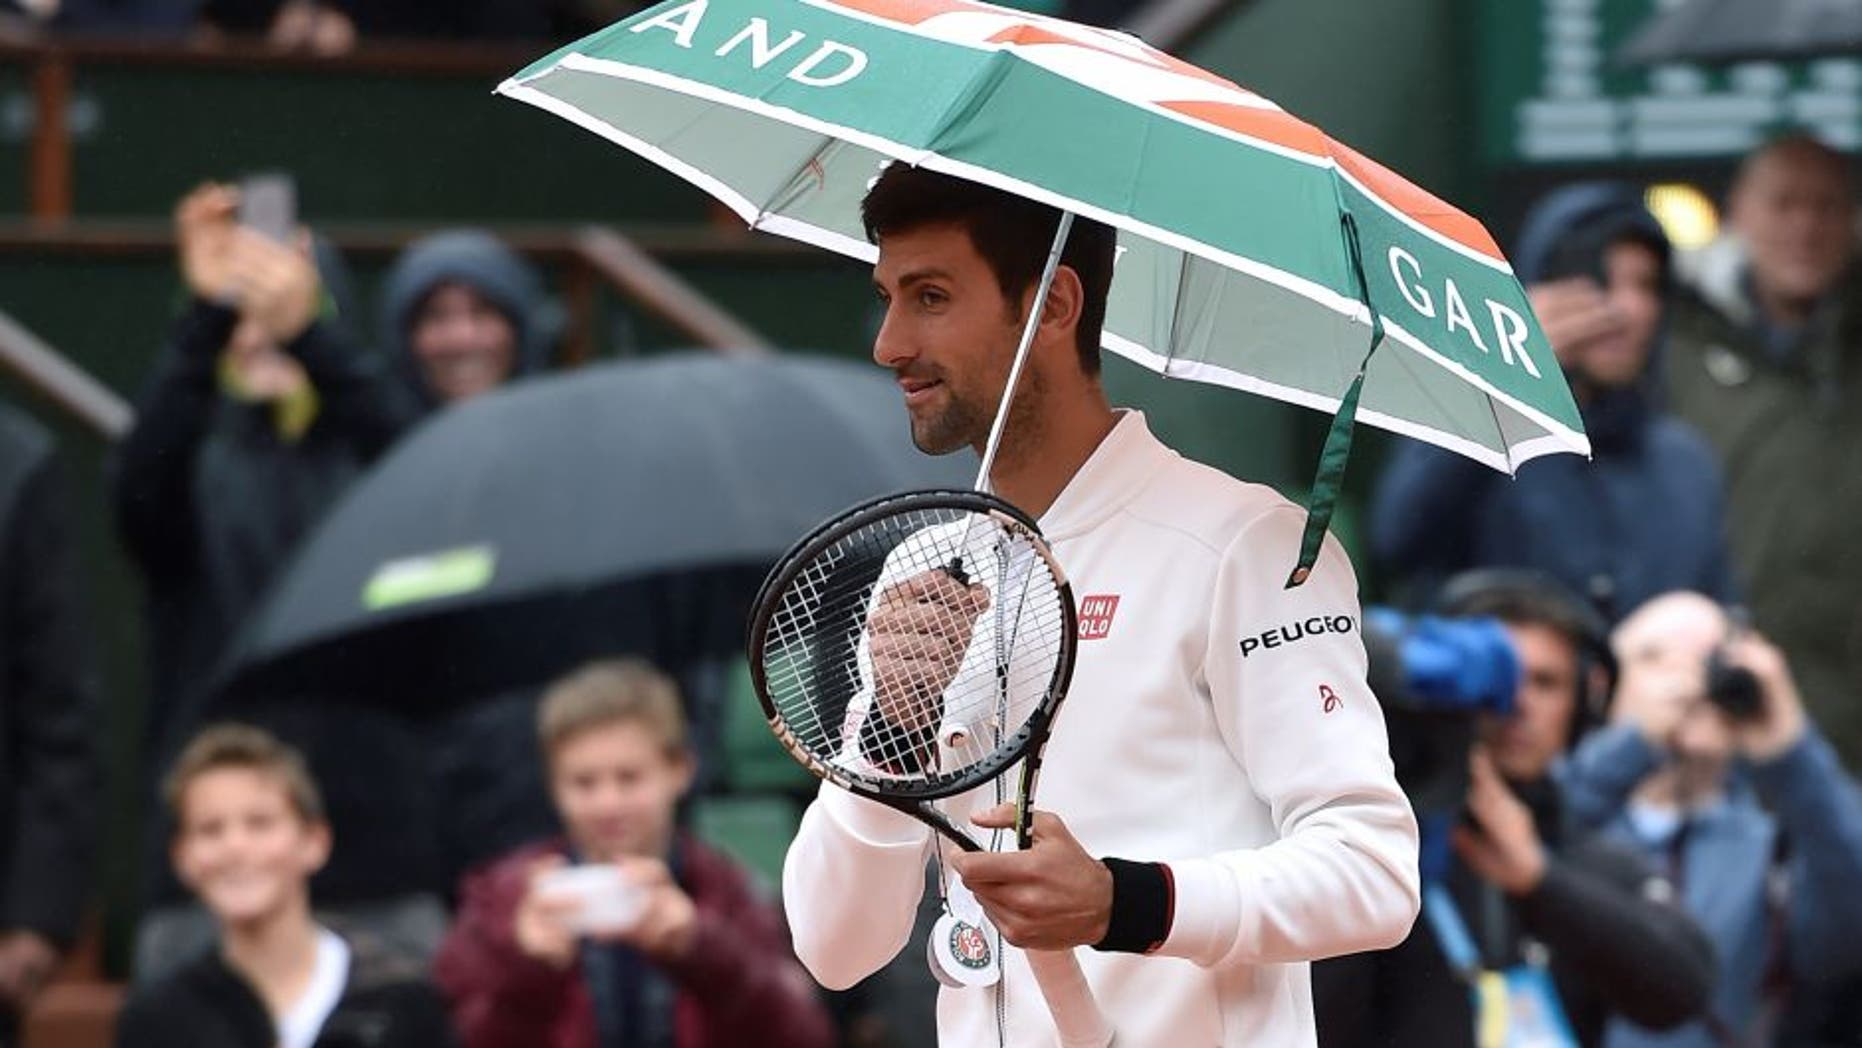 Serbia's Novak Djokovic holds up an umbrella before resuming his men's fourth round match against Spain's Roberto Bautista-Agut at the Roland Garros 2016 French Tennis Open in Paris on May 31, 2016. / AFP / Eric FEFERBERG (Photo credit should read ERIC FEFERBERG/AFP/Getty Images)